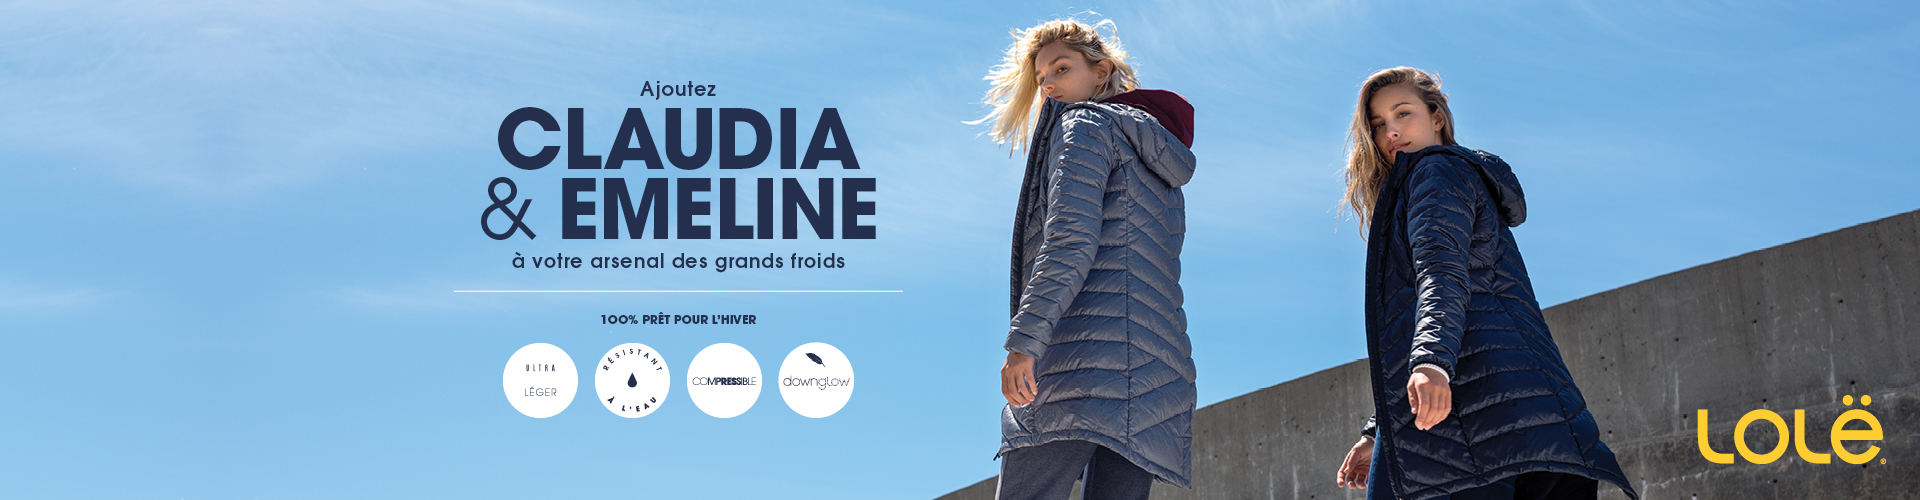 Shop Our Great Selection Of Lolë Active Women's Winter Clothing and Outerwear & Jackets Available For Sale At Source For Sports Stores Near You.